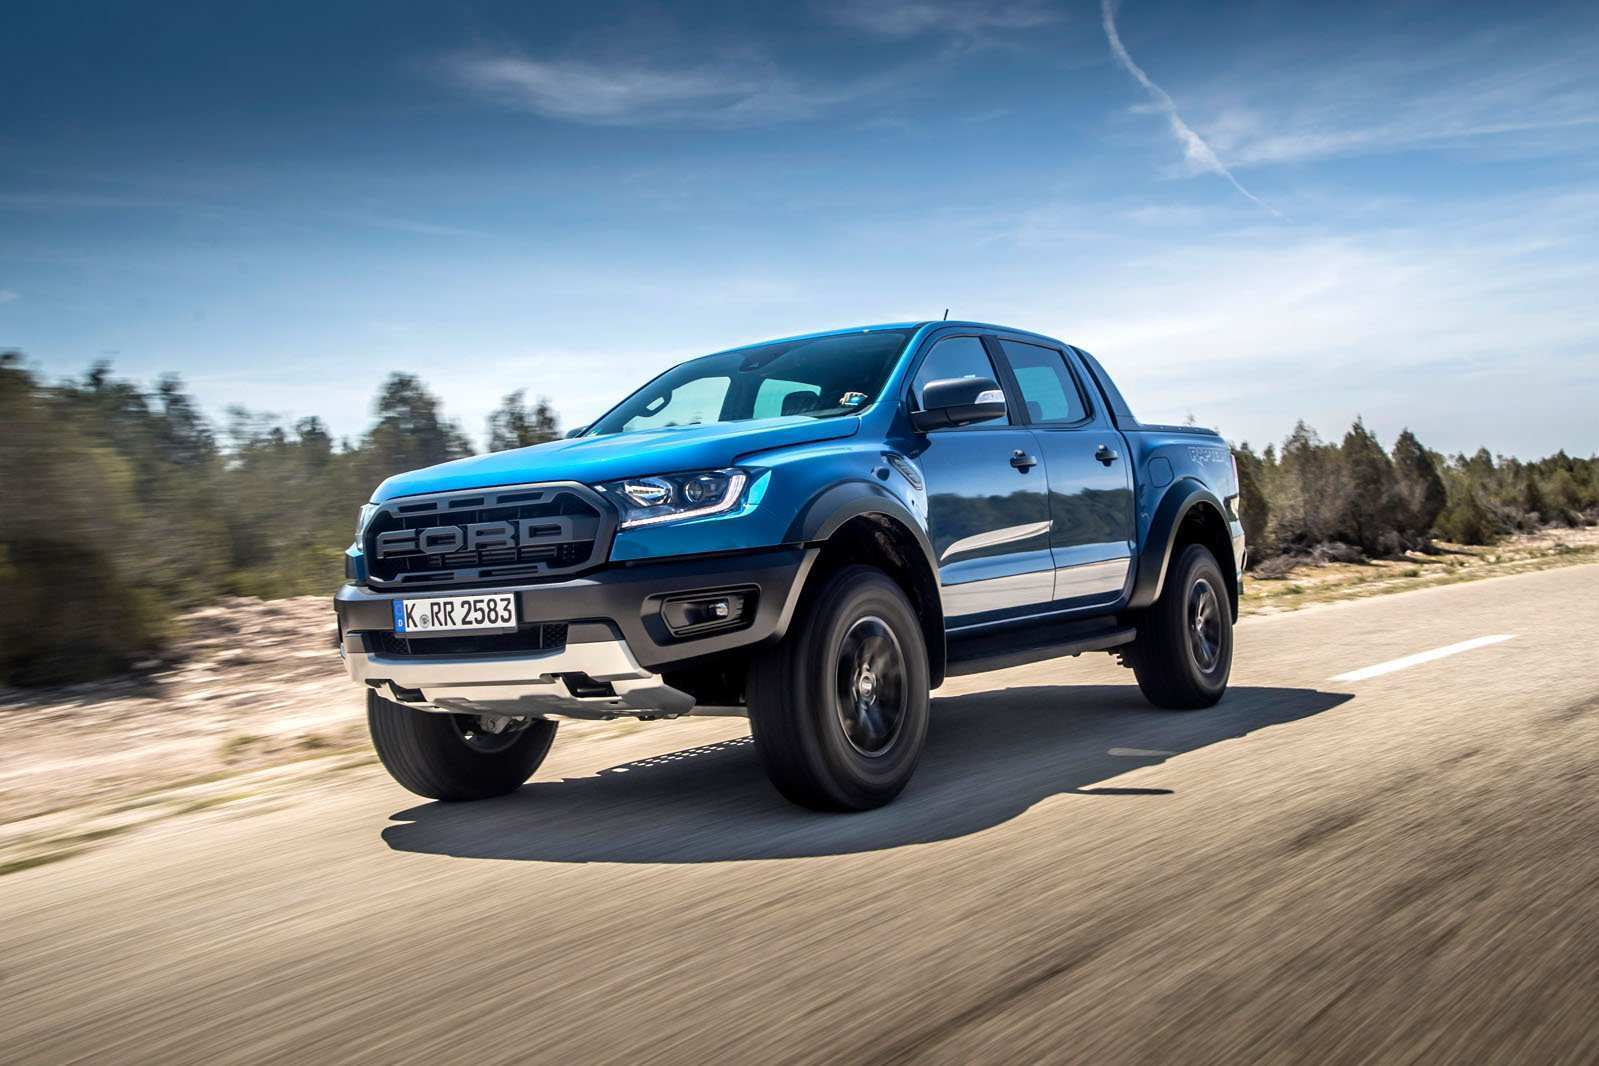 37 Concept of The Ford Ranger 2019 Release Date Review Exterior and Interior with The Ford Ranger 2019 Release Date Review